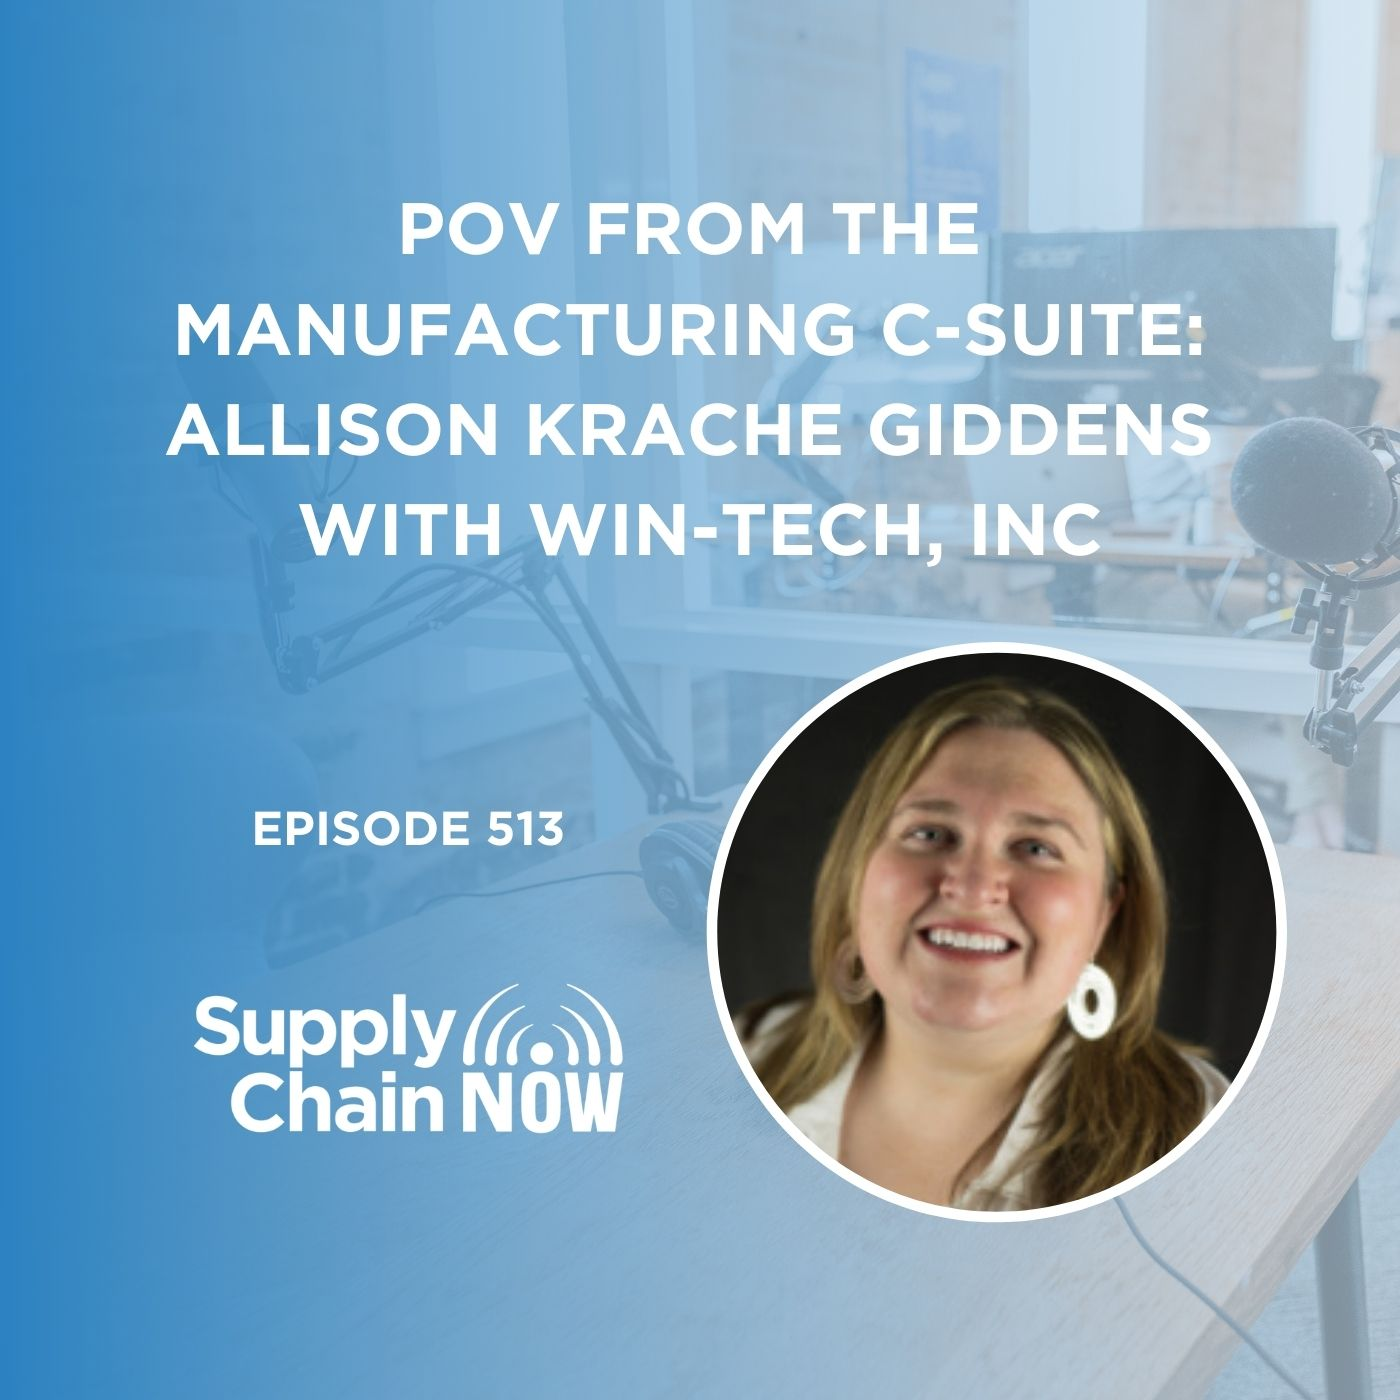 POV from the Manufacturing C-Suite: Allison Krache Giddens with Win-Tech, Inc.